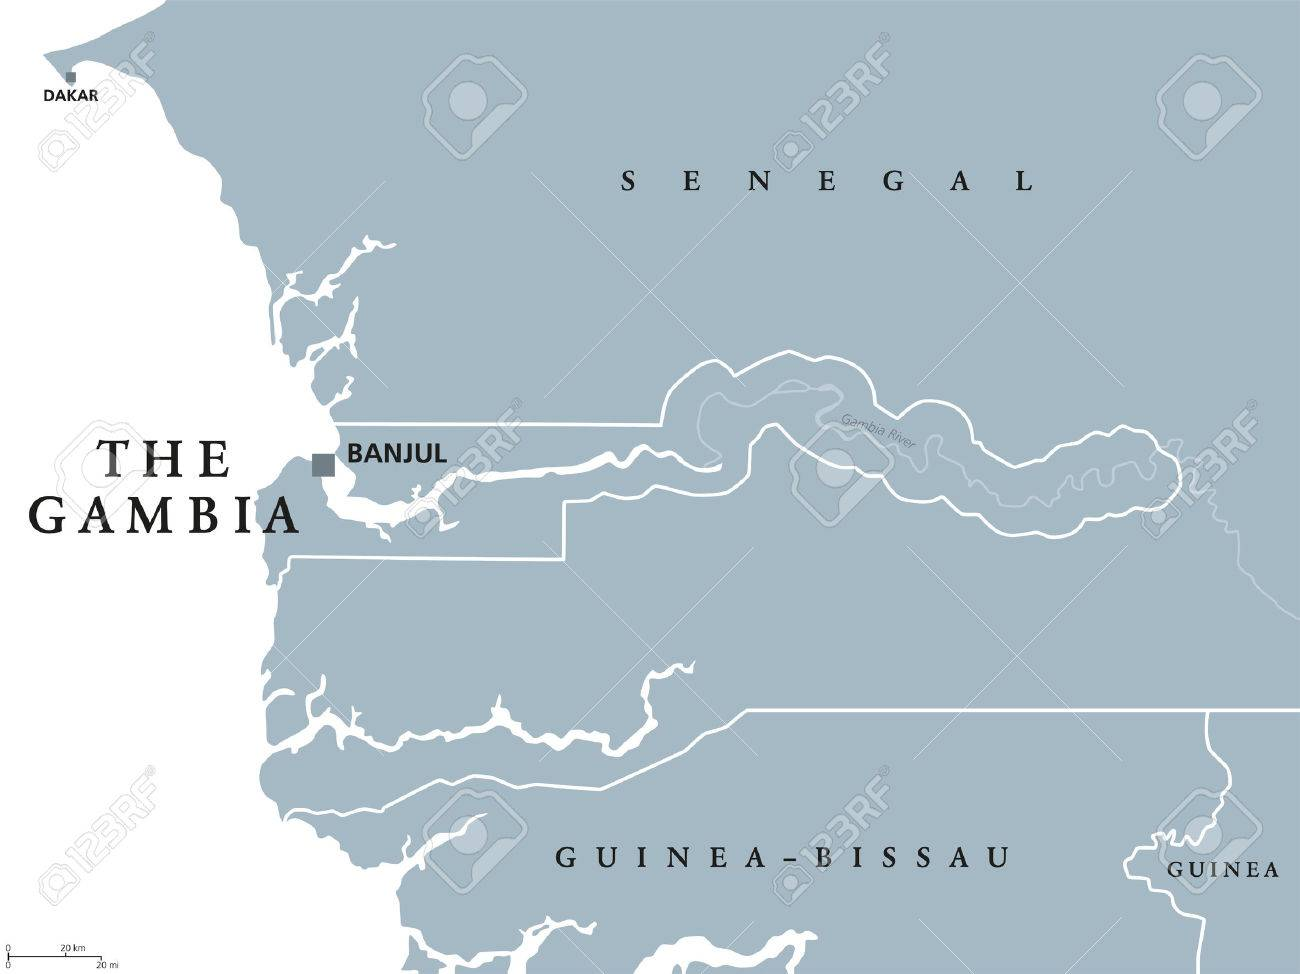 Gambia On Africa Map.The Gambia Political Map With Capital Banjul Republic And Country